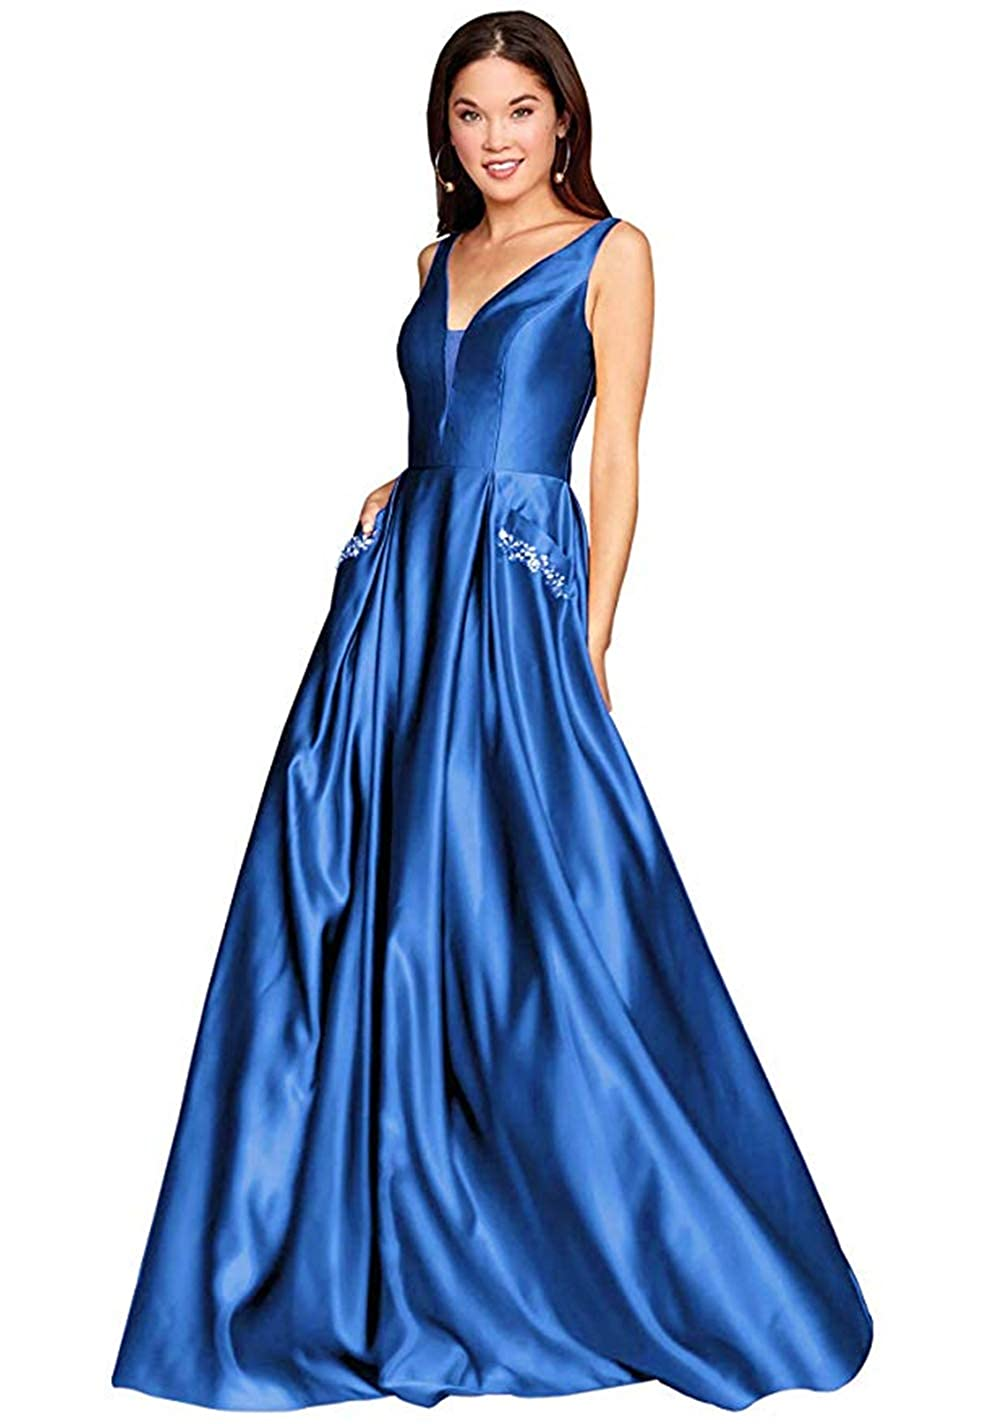 01oceanbluee PROMNOVAS Women's V Neck Backless Beaded Satin Prom Dress Long Formal Evening Gown with Pockets